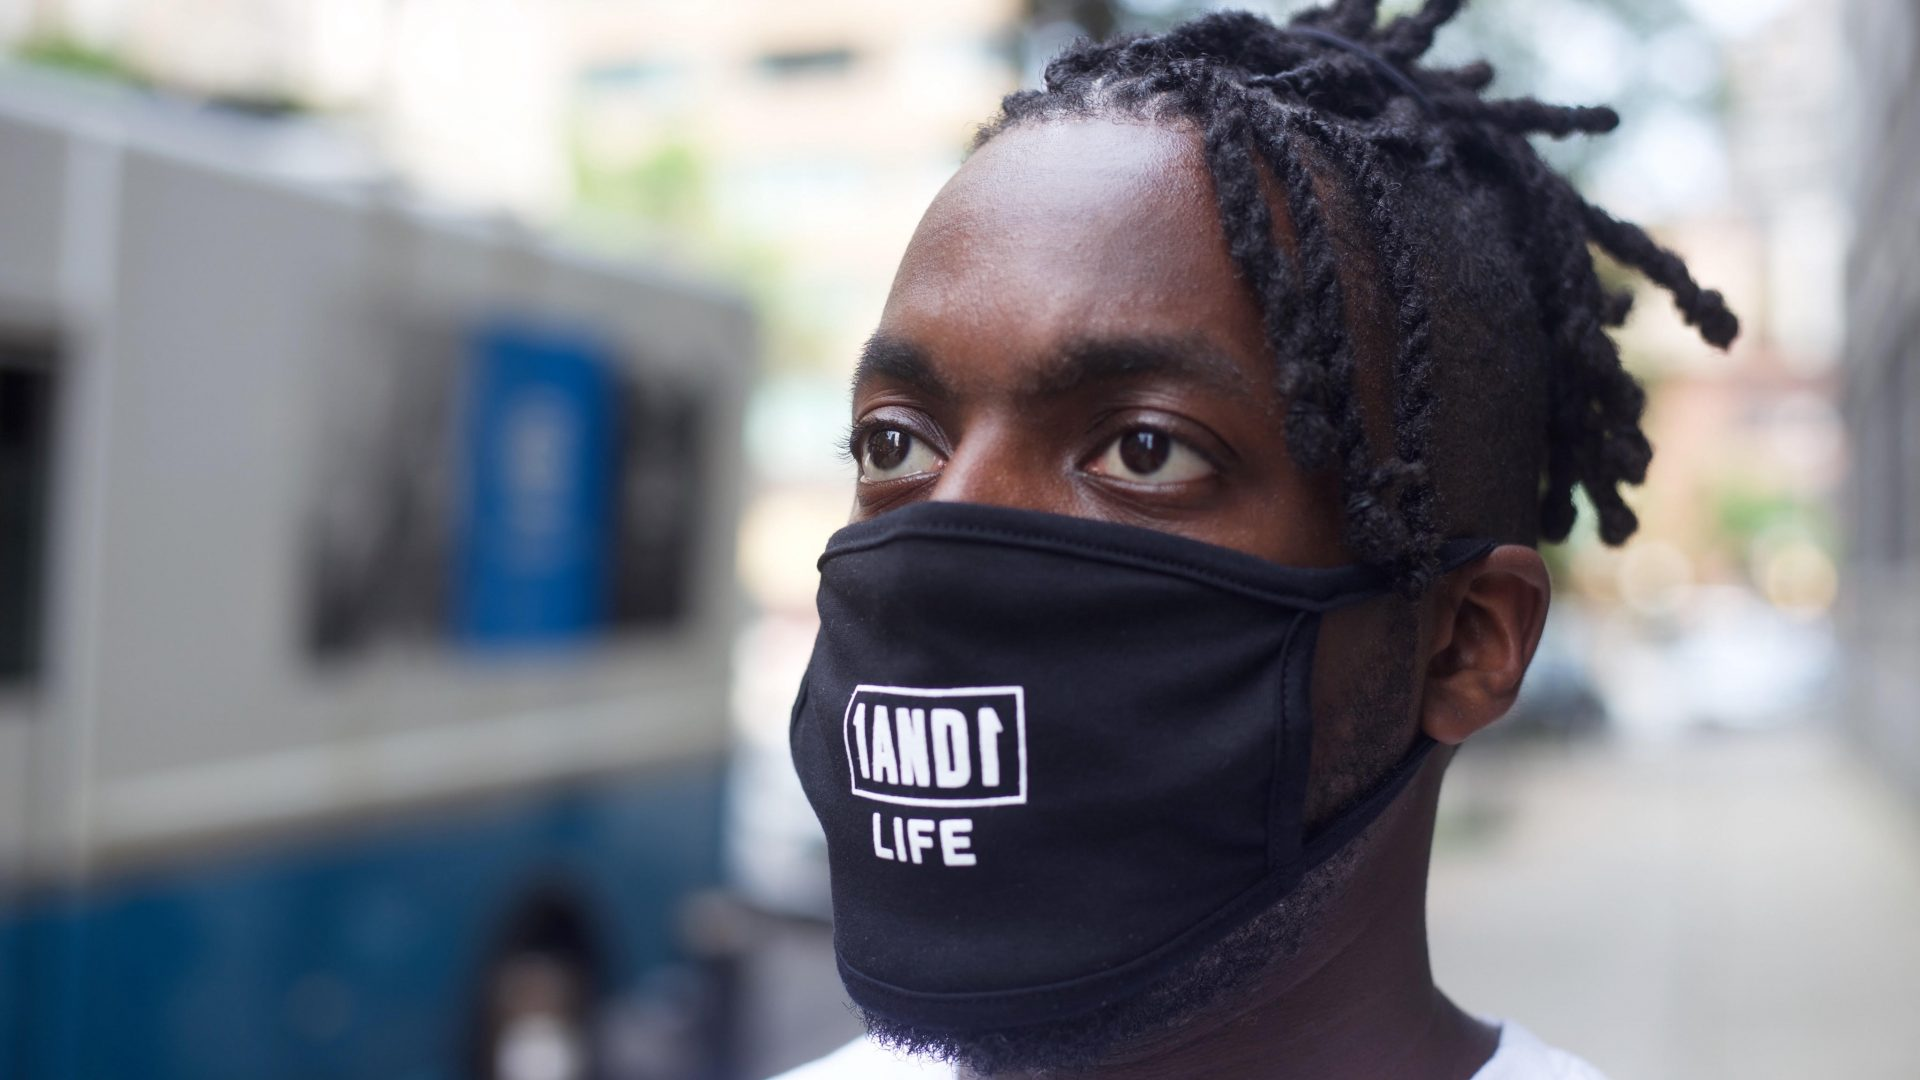 Model wearing 1AND1 Life reusable face mask